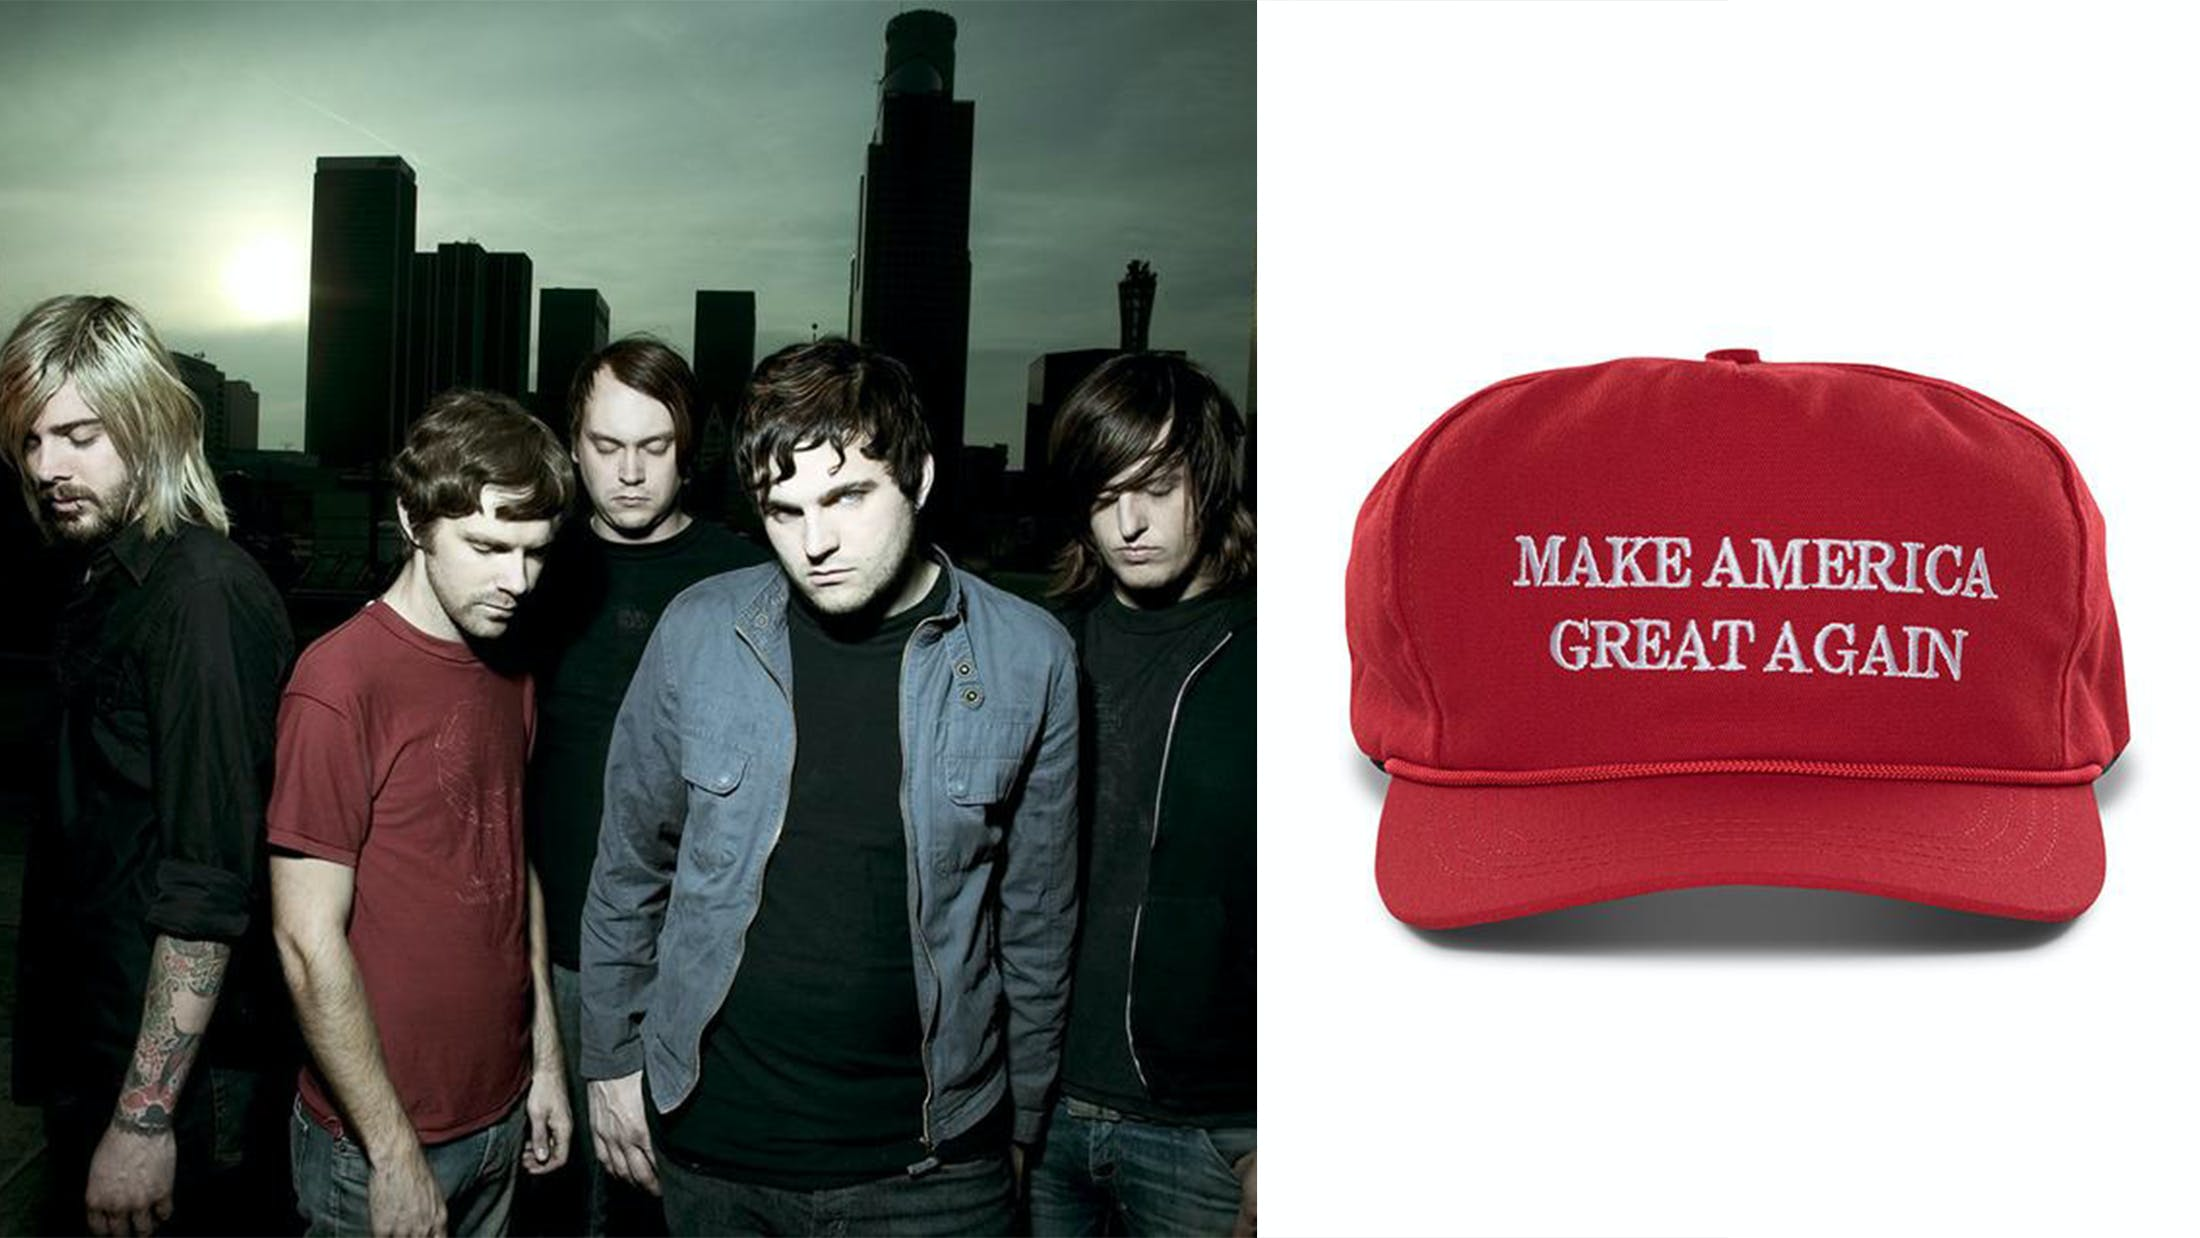 Norma Jean's Cory Brandan Says Make America Great Again Hats Are Welcome At His Shows